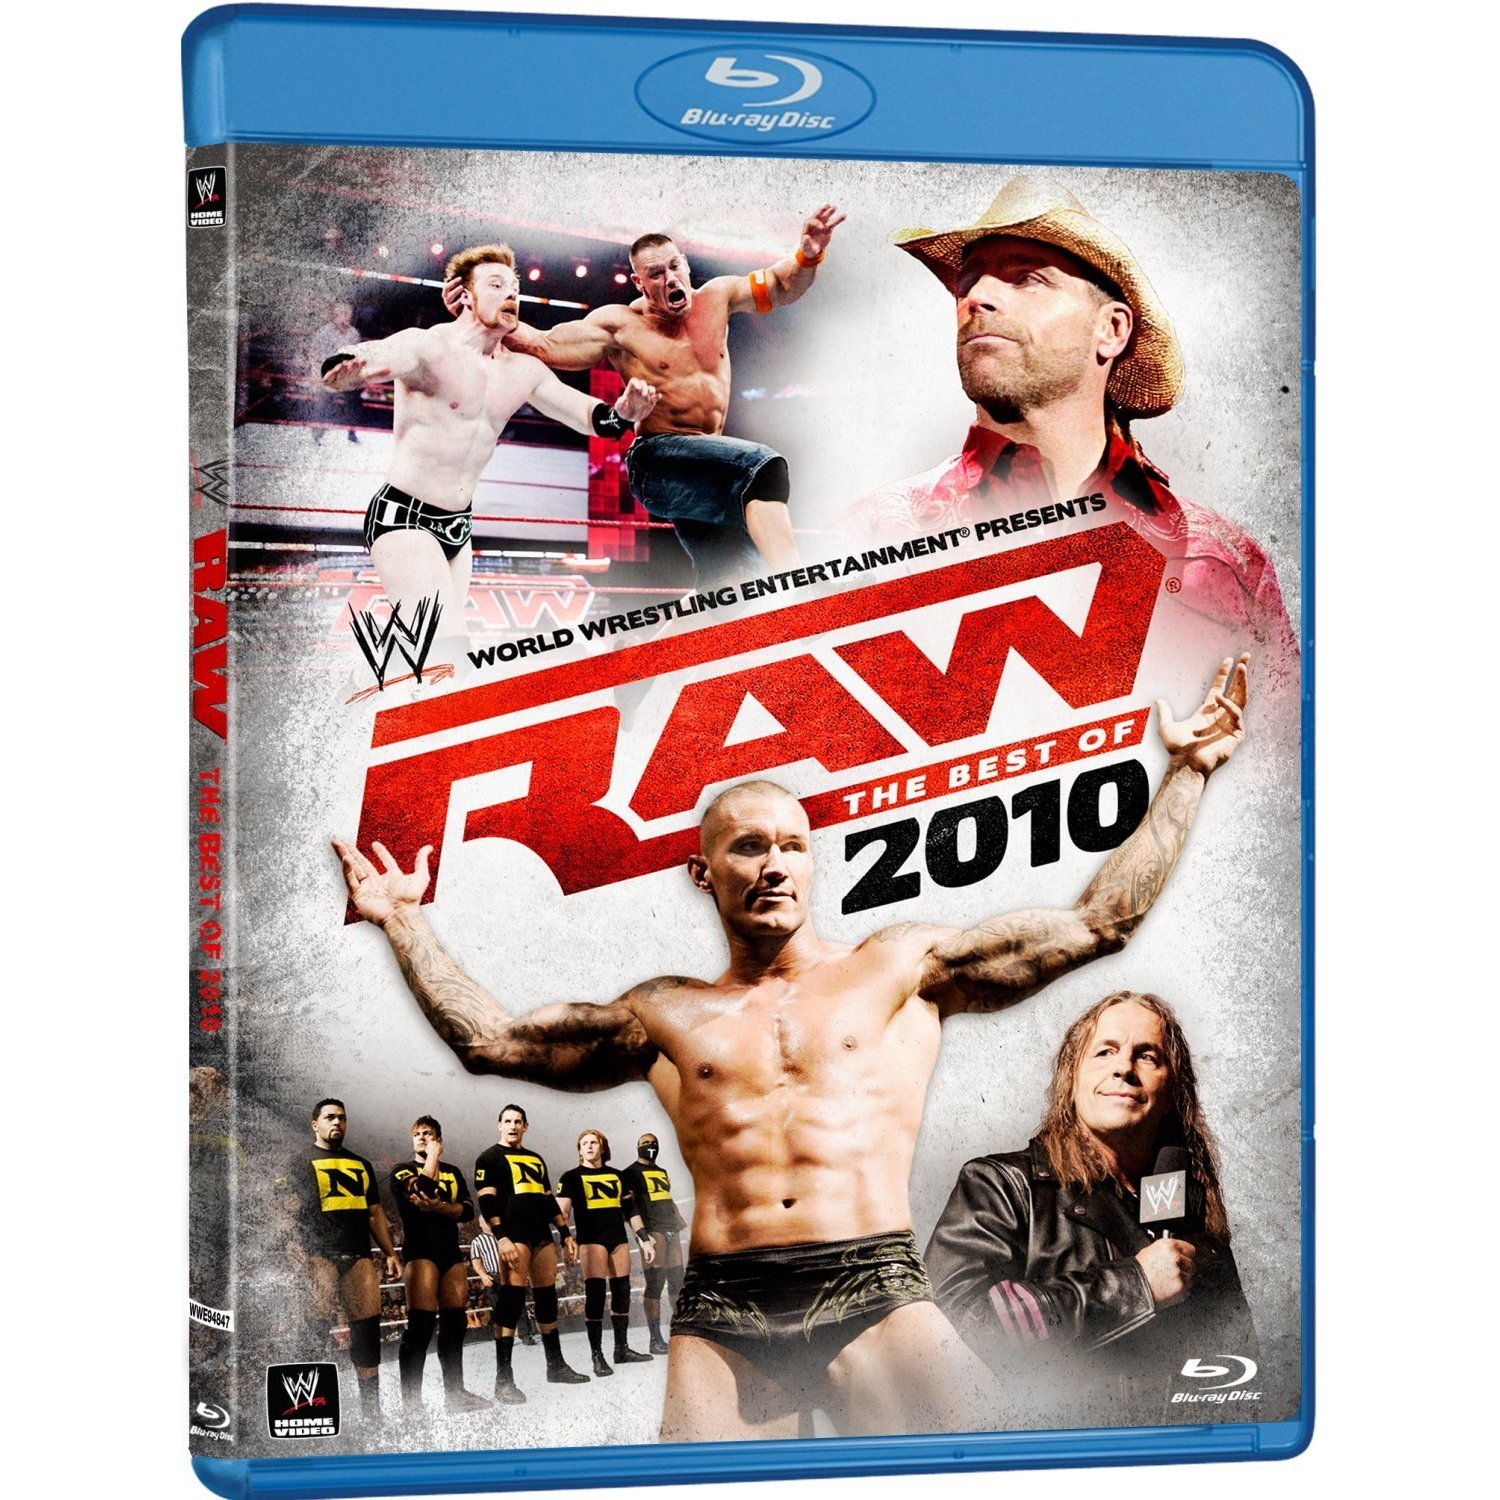 Blu-ray Journal: Complete Disc Content Listing For WWE RAW